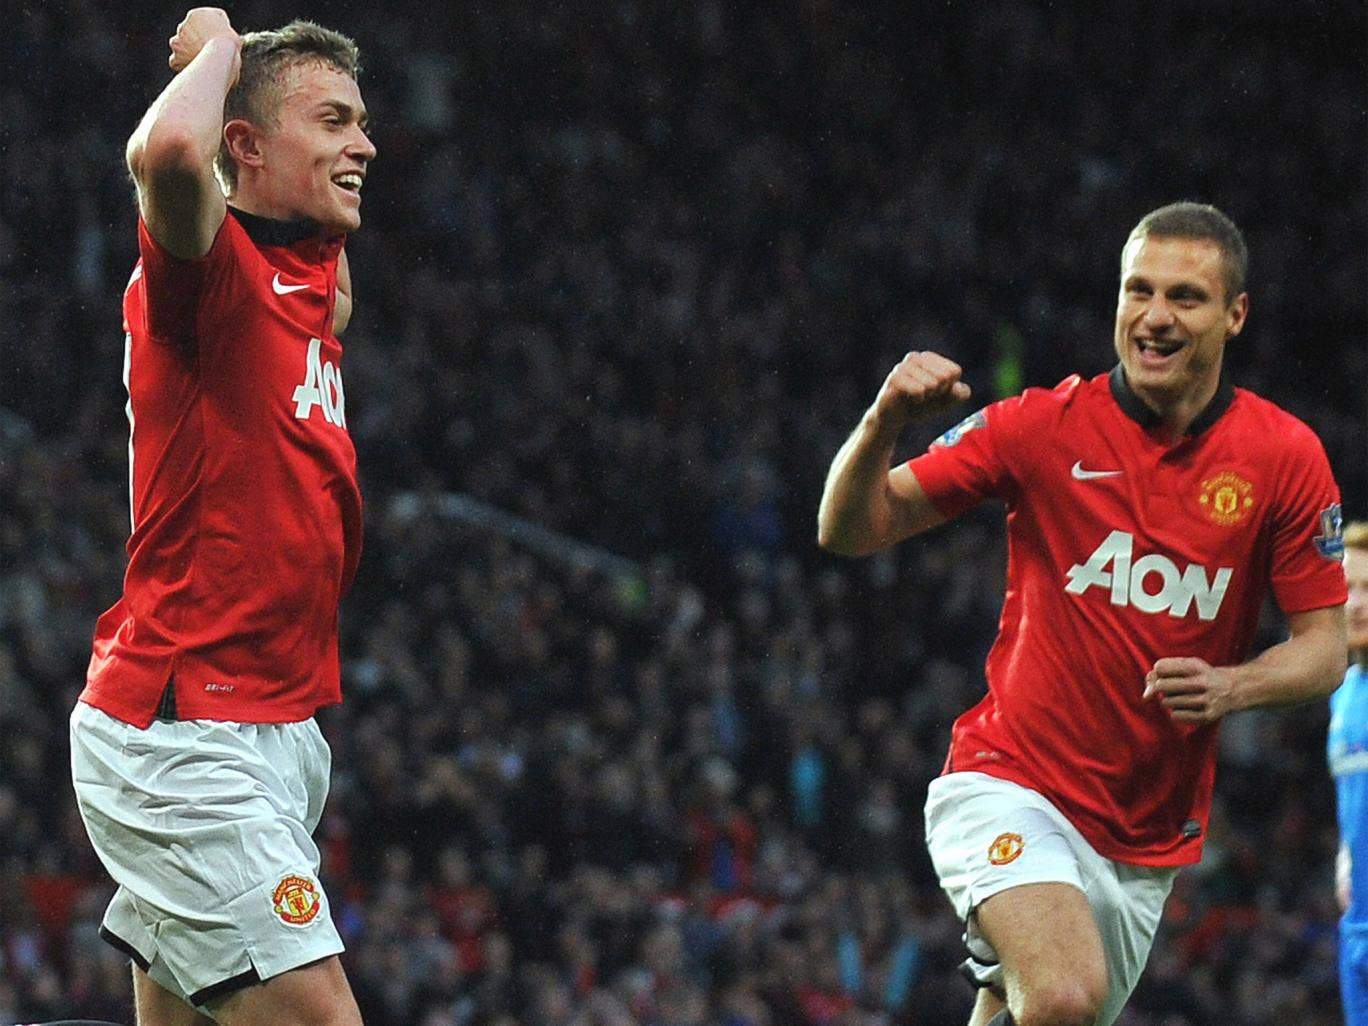 James Wilson celebrates with Nemanja Vidic, who was making his last appearance at Old Trafford for United